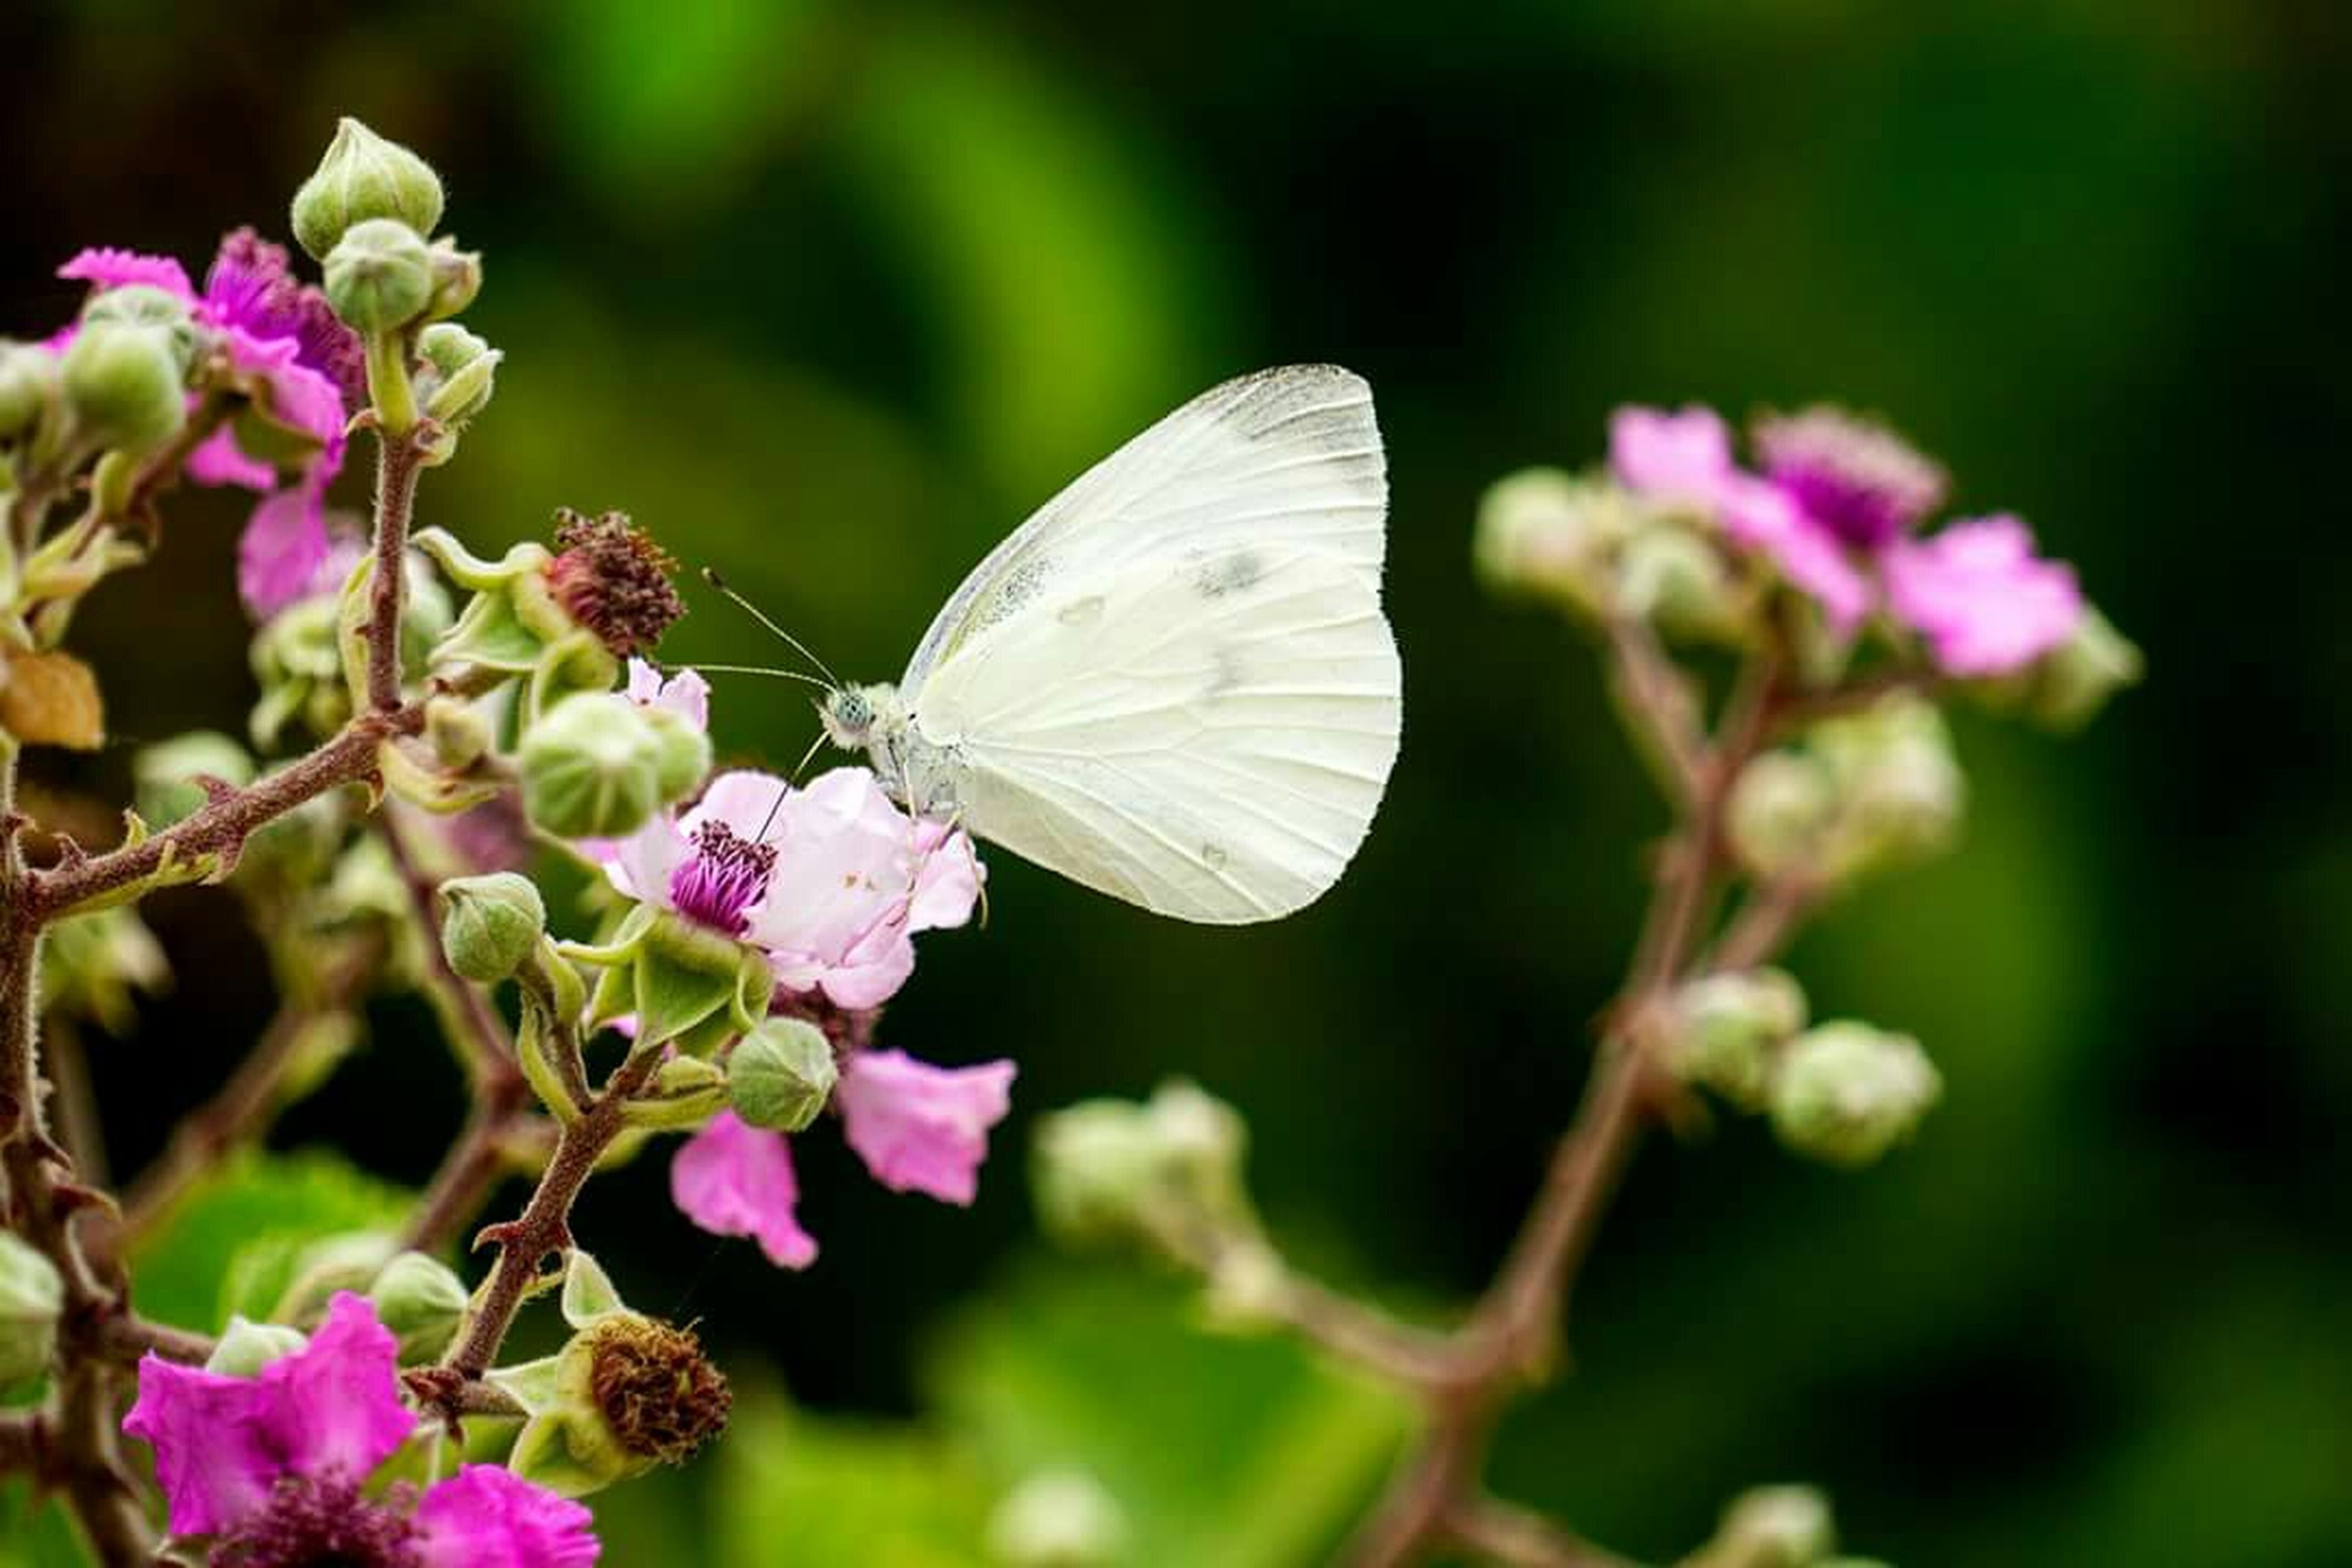 flower, one animal, animals in the wild, insect, animal themes, wildlife, fragility, freshness, growth, beauty in nature, focus on foreground, pollination, butterfly - insect, close-up, butterfly, nature, petal, plant, flower head, pink color